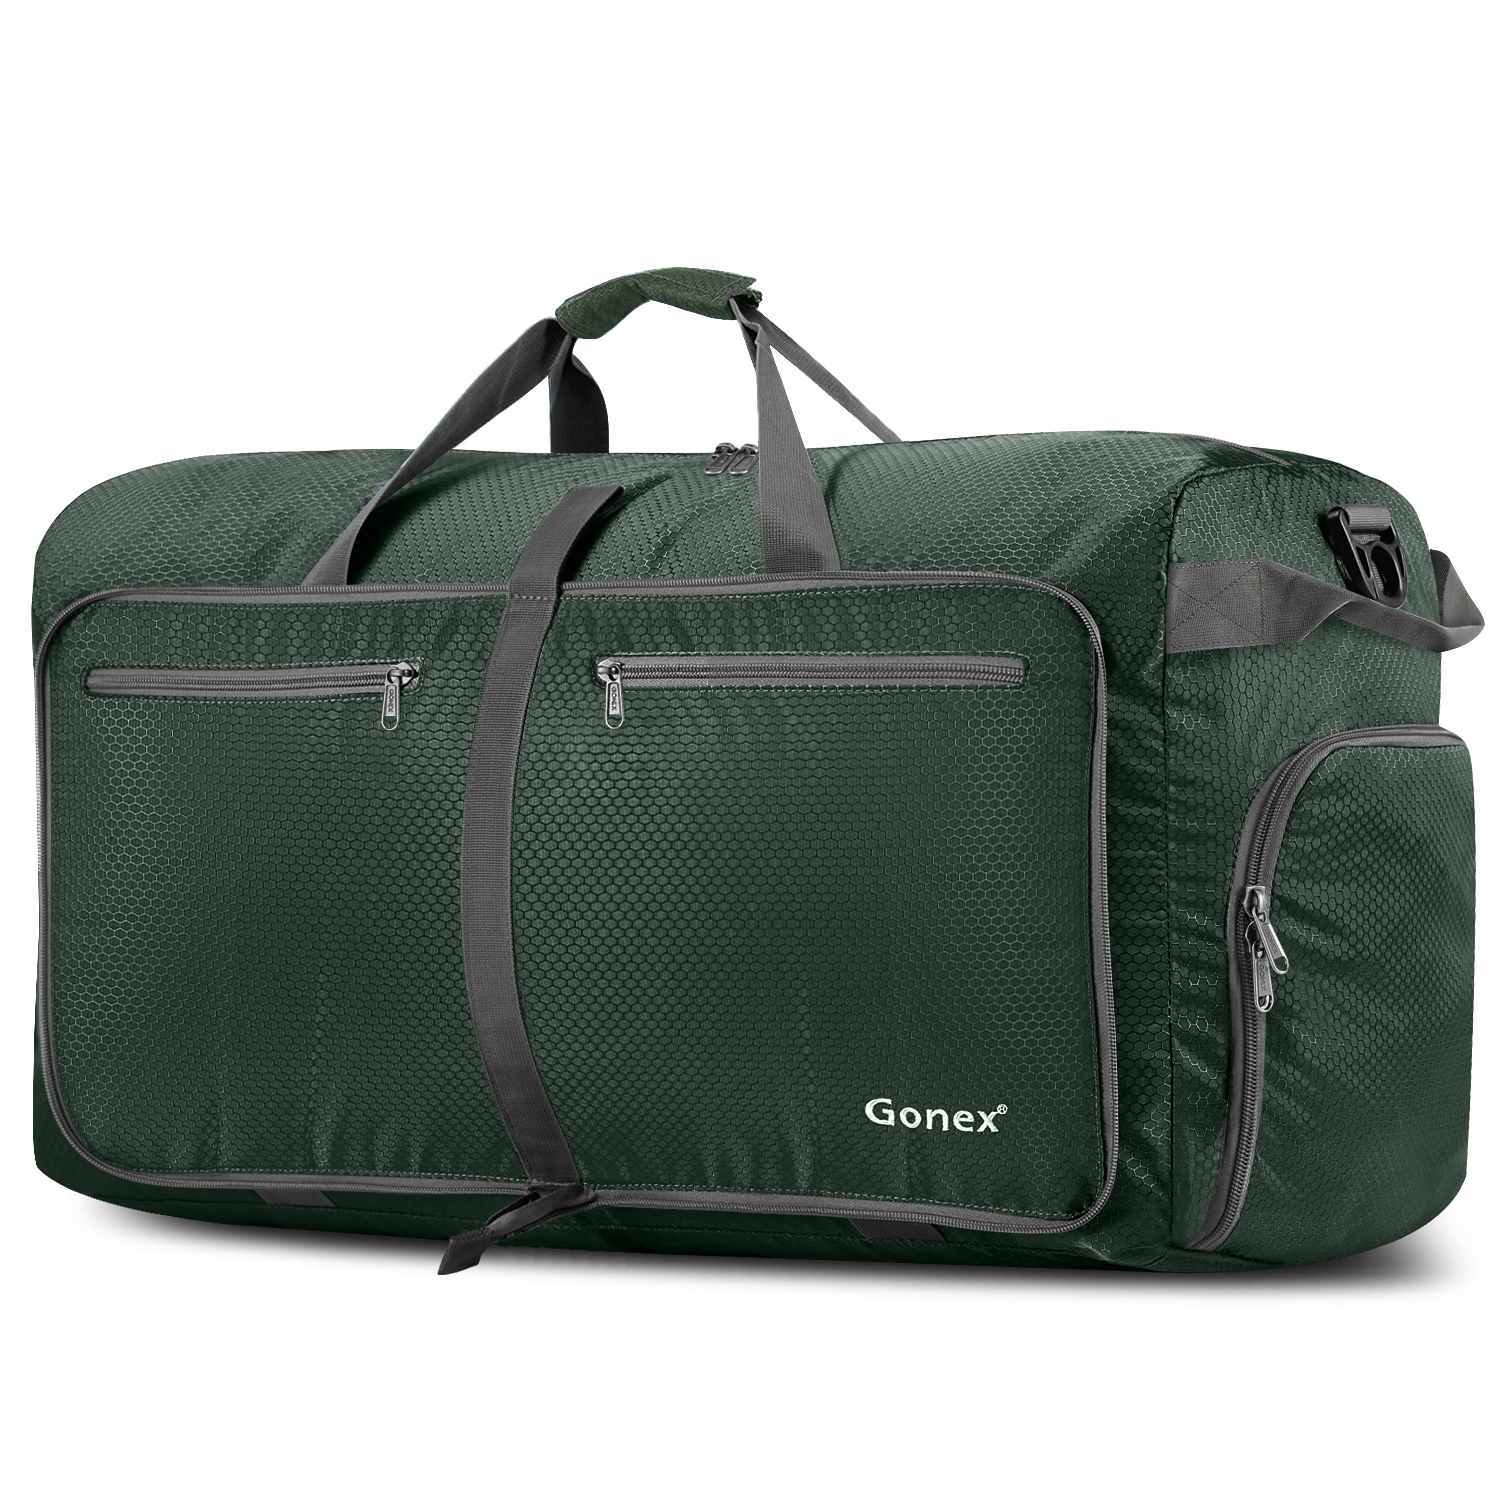 a9a8ce39dfe4 Gonex 100L Lightweight Foldable Travel Duffel Bag,Waterproof Travel Luggage